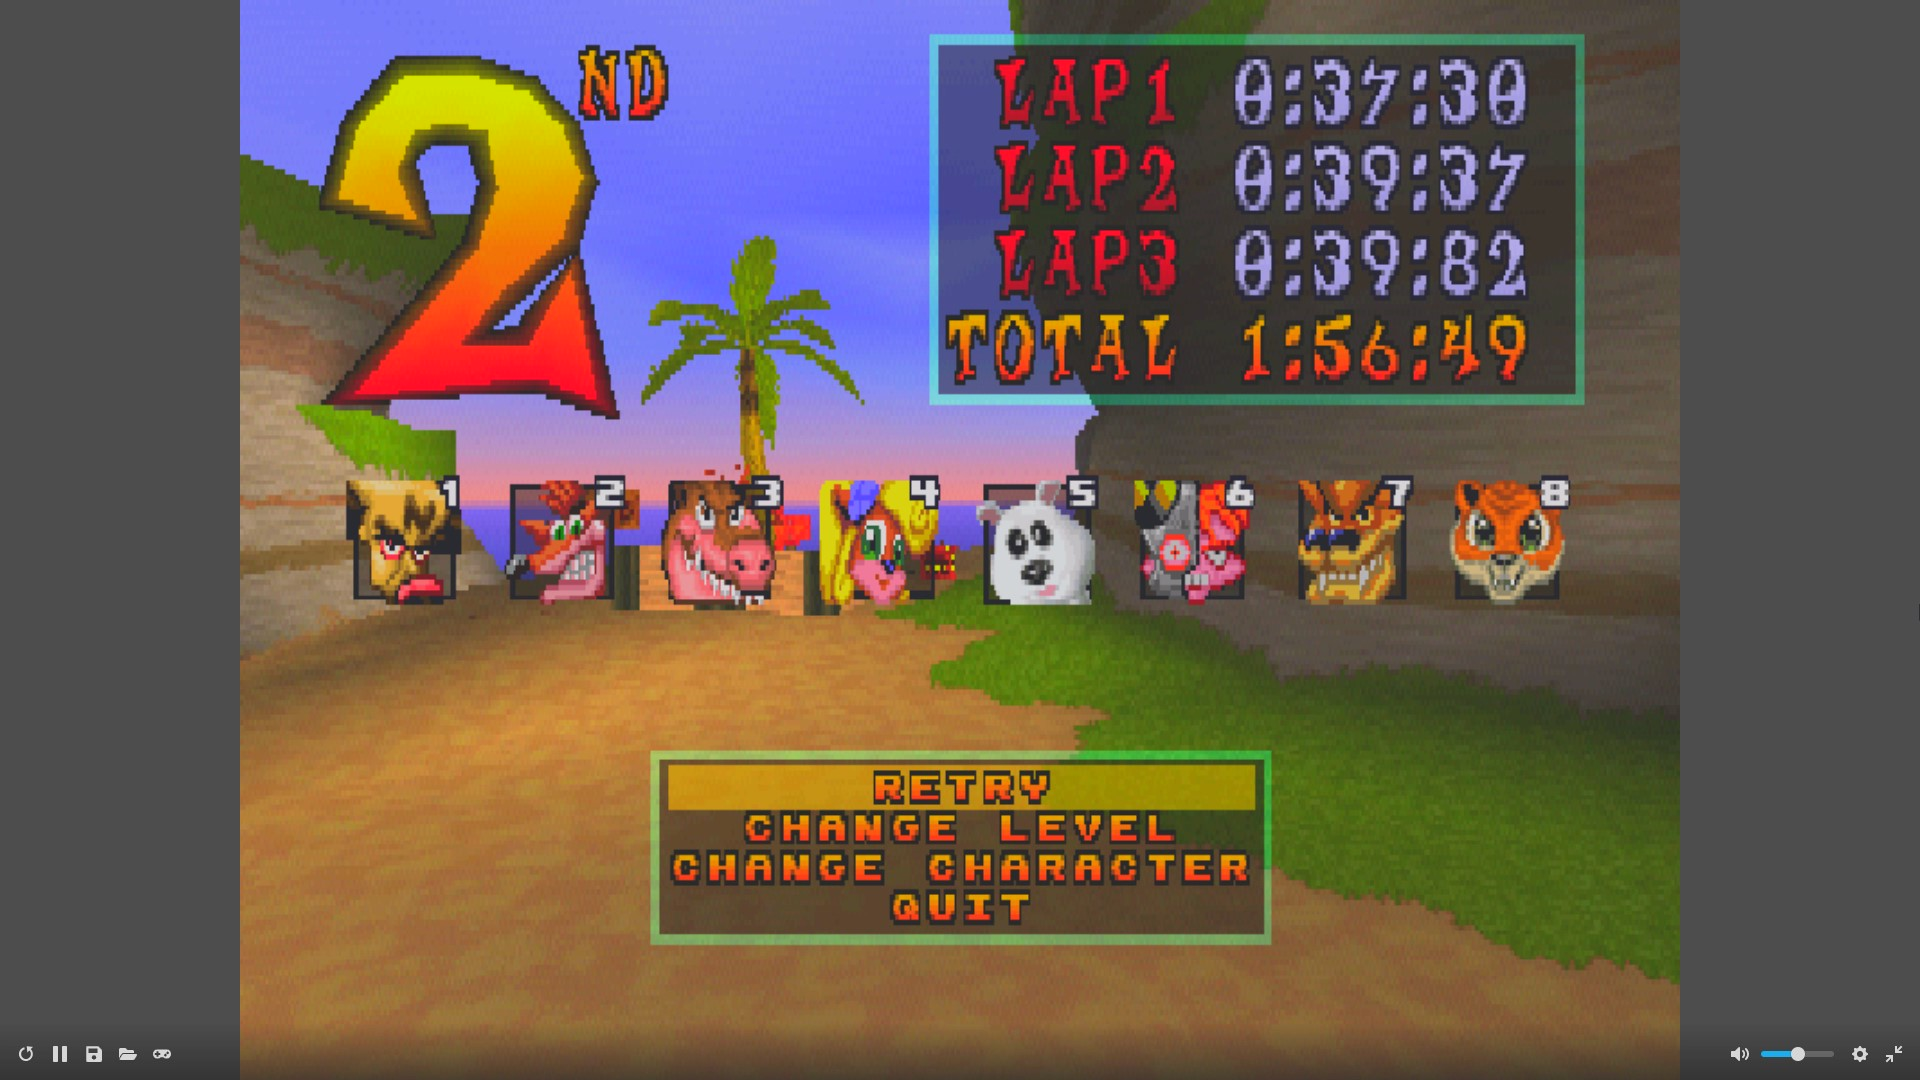 CTR Crash Team Racing: Arcade: Crash Cove: Single: Easy: 3 Laps [Race Time] time of 0:01:56.49